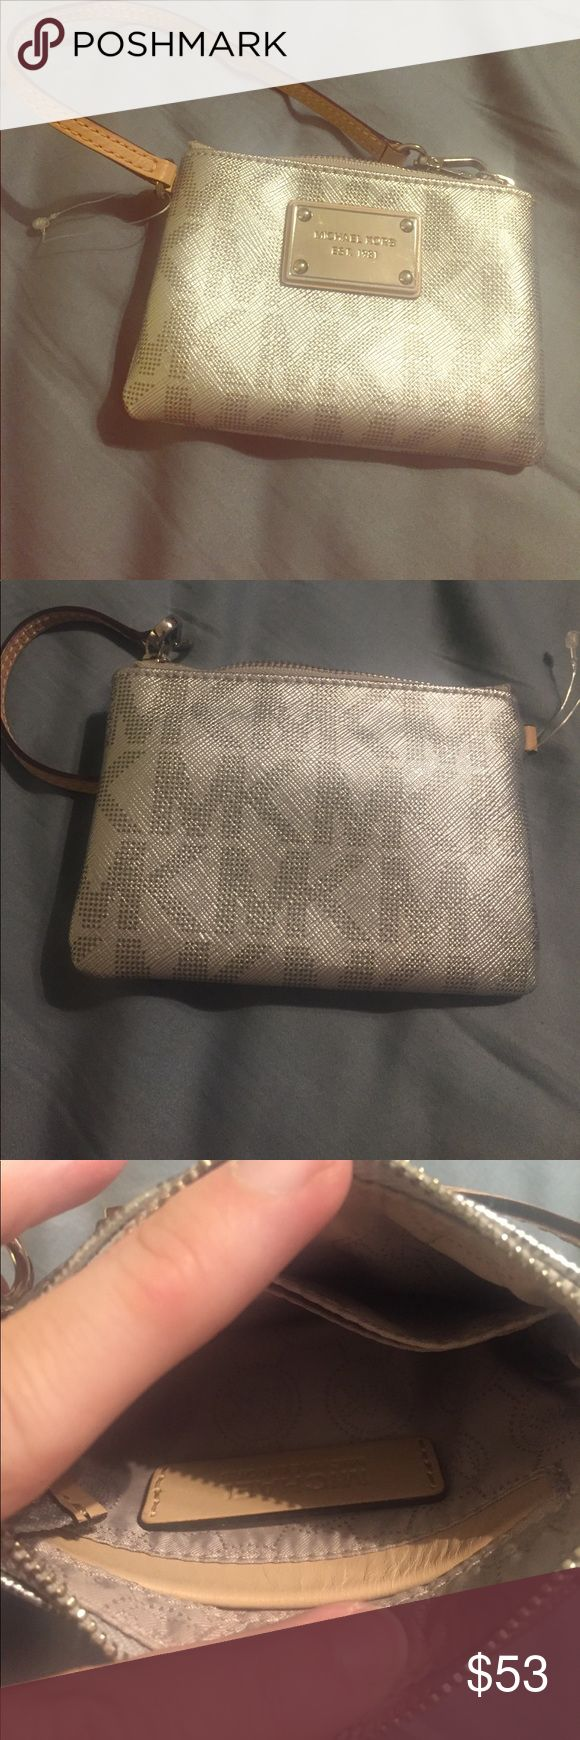 NWOT Michael Kors Coin Purse silver logo Got for Christmas gift and never used. NWOT Michael Kors Coin Purse silver logo Michael Kors Bags Clutches & Wristlets